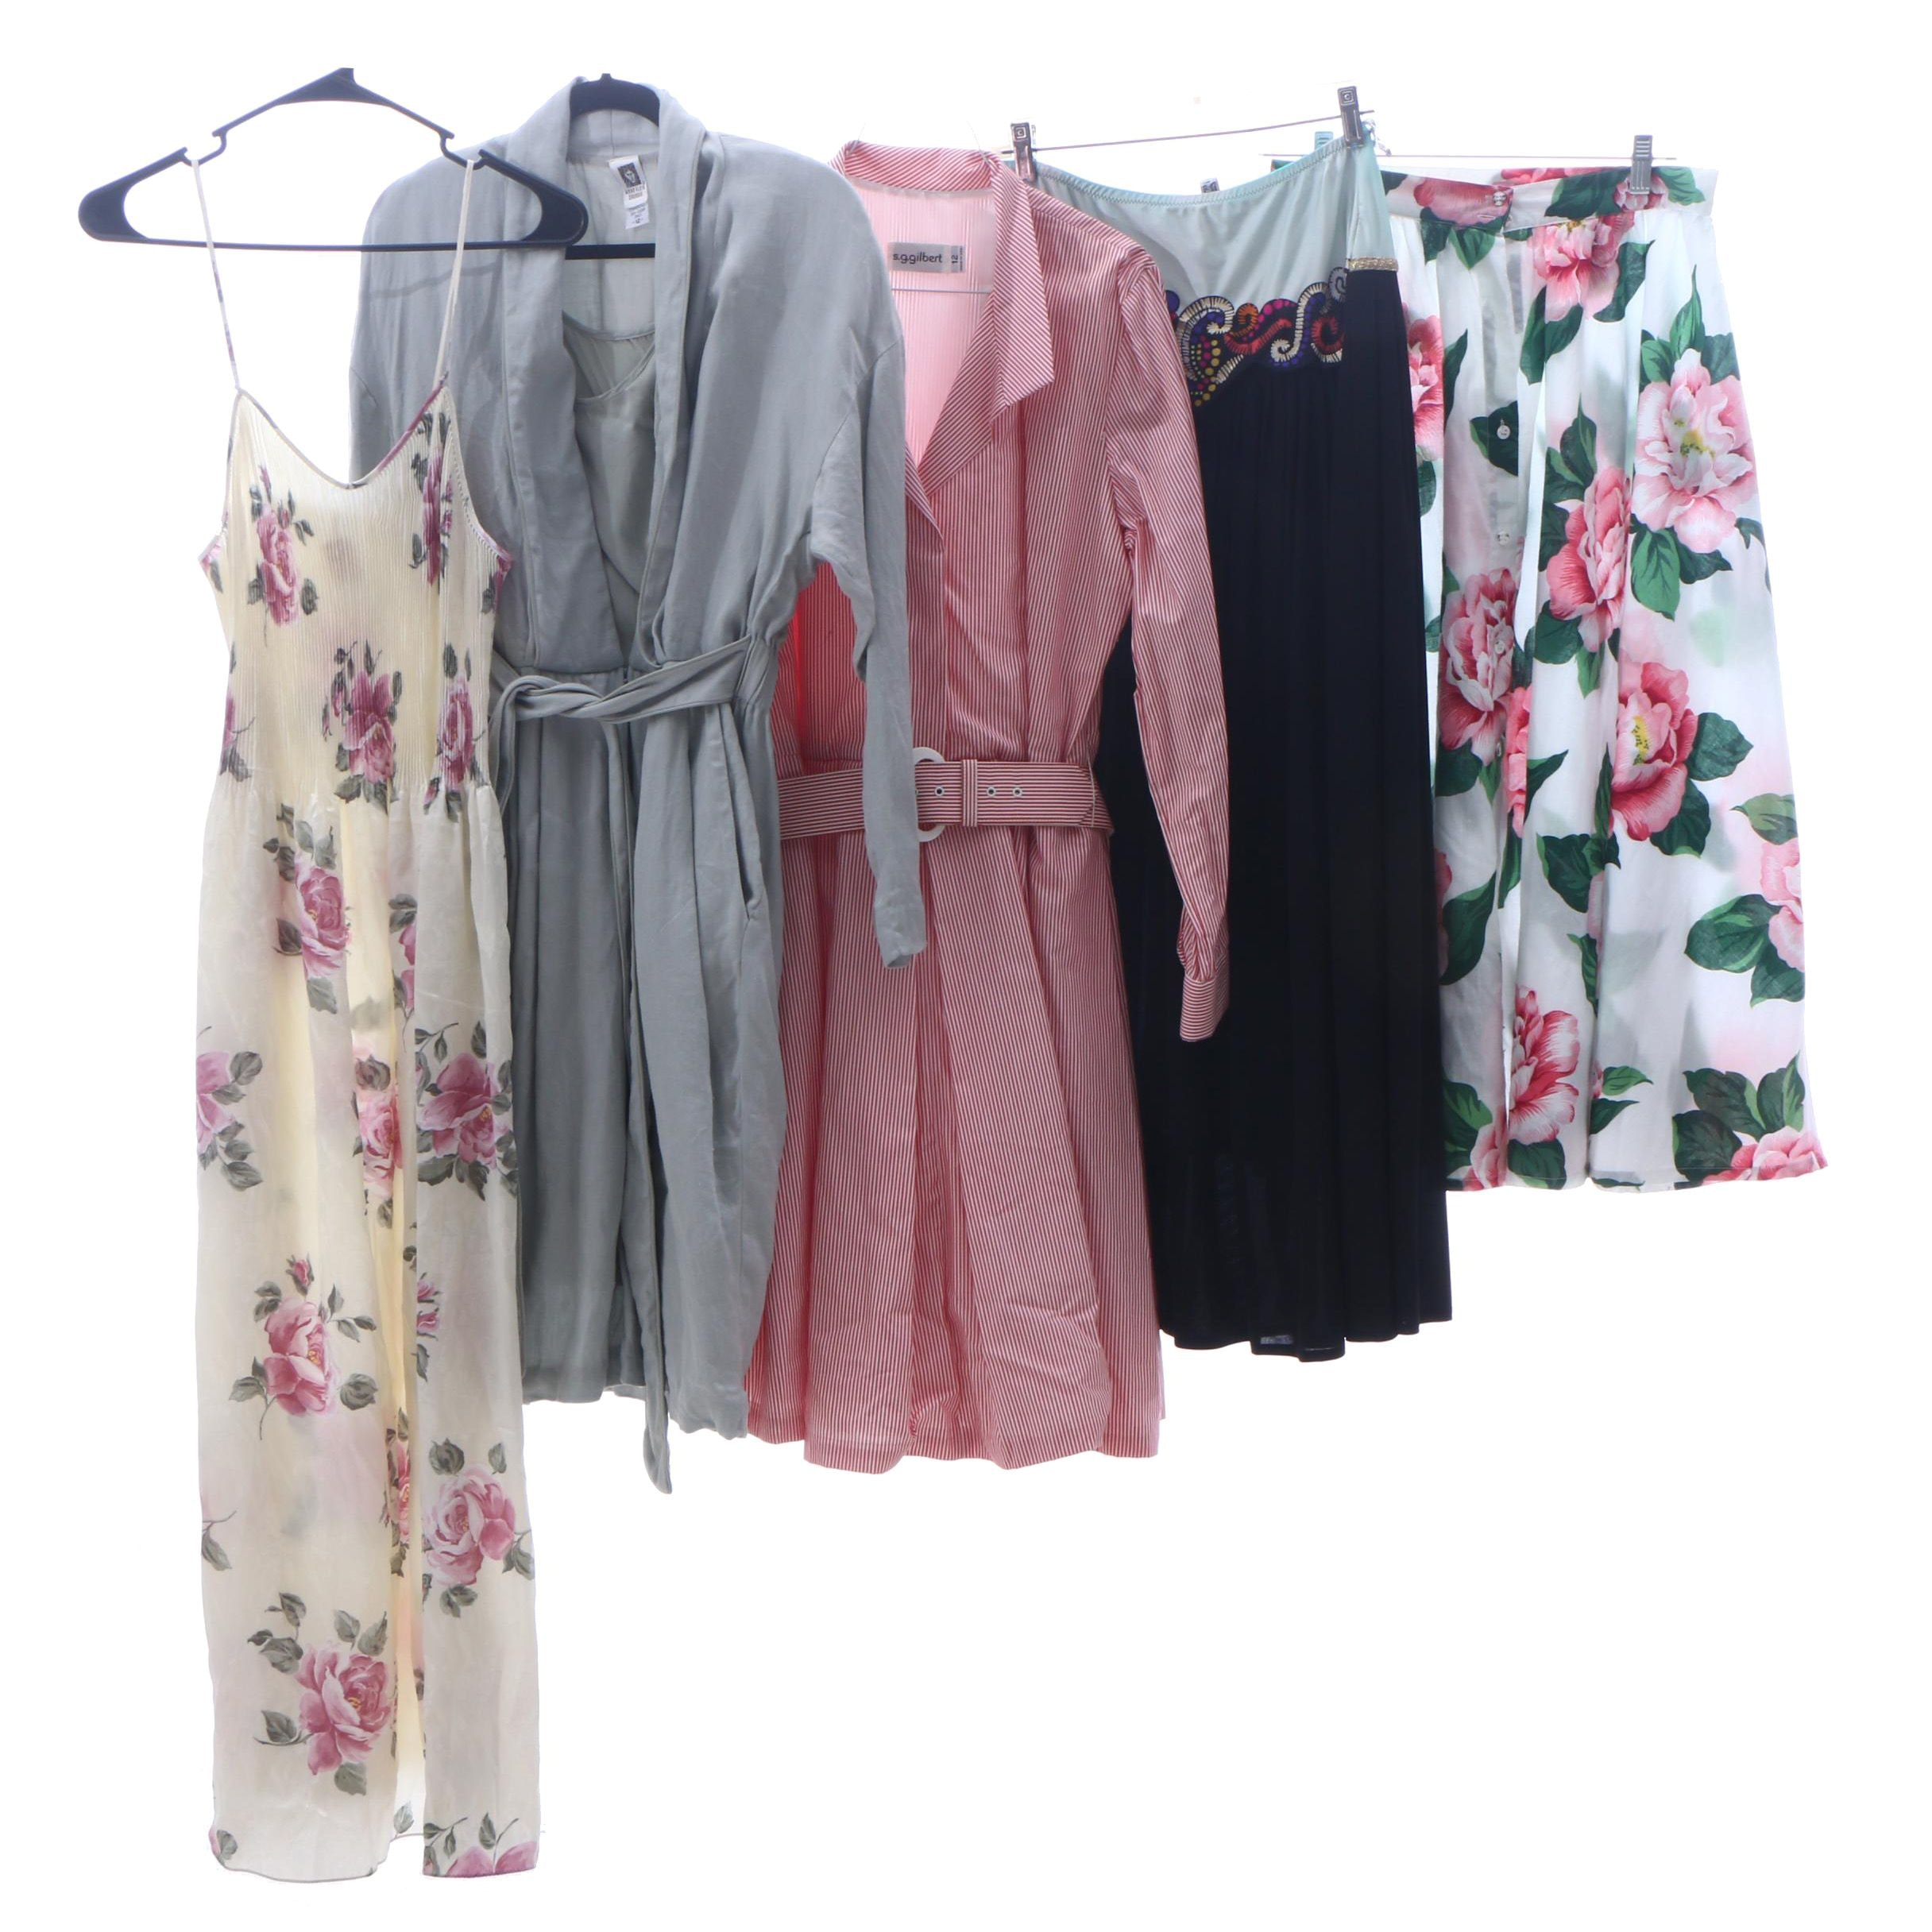 Mary McFadden Floral Print Nightgown and Other Clothing Separates